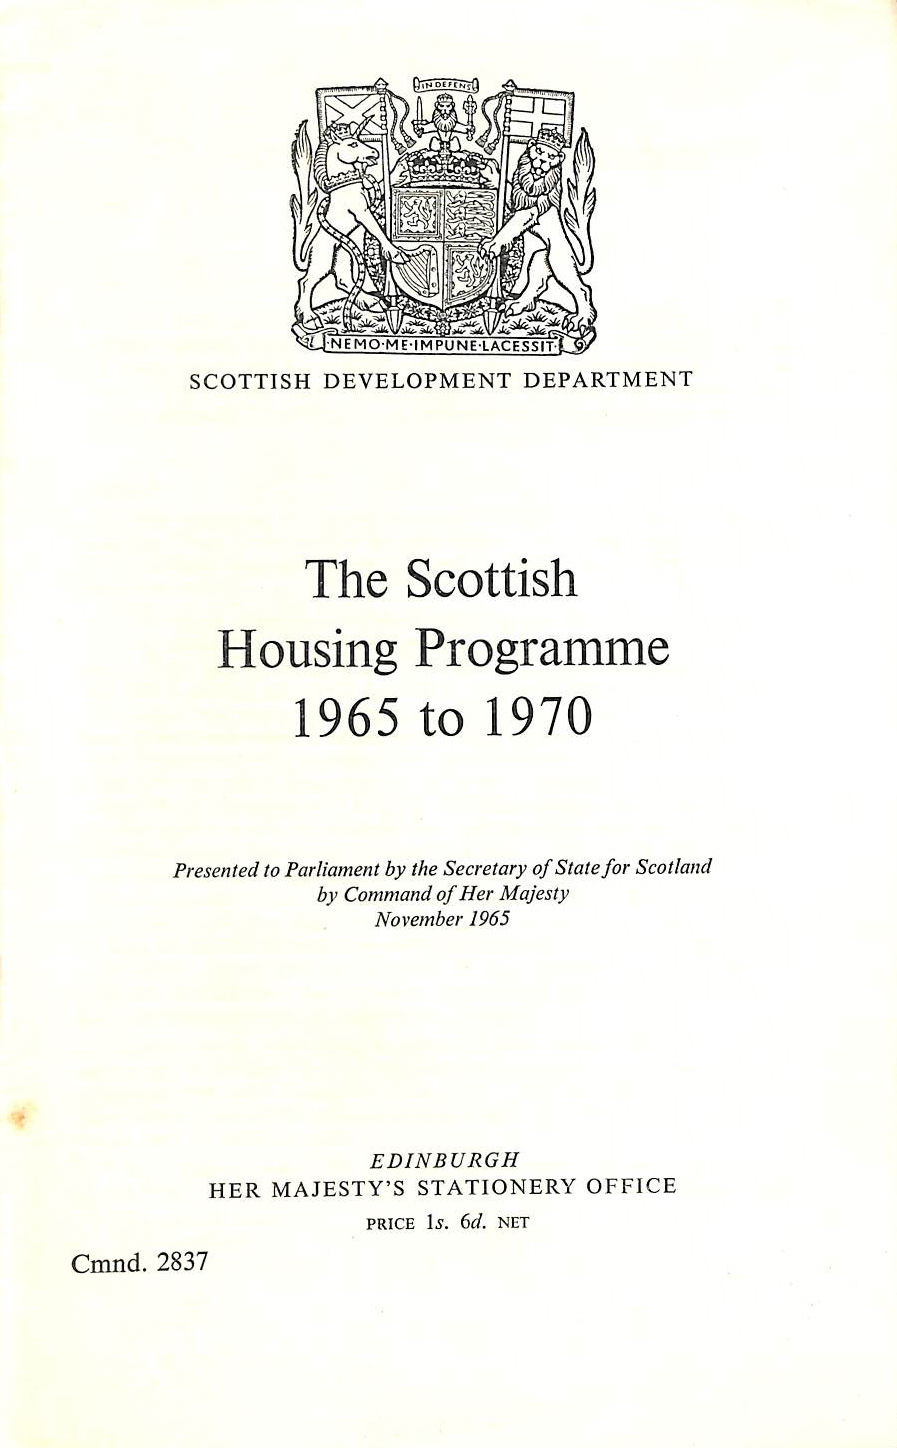 Image for The Scottish housing programme, 1965 to 1970: Presented to Parliament by the Secretary of State for Scotland (Cmnd. 2837)